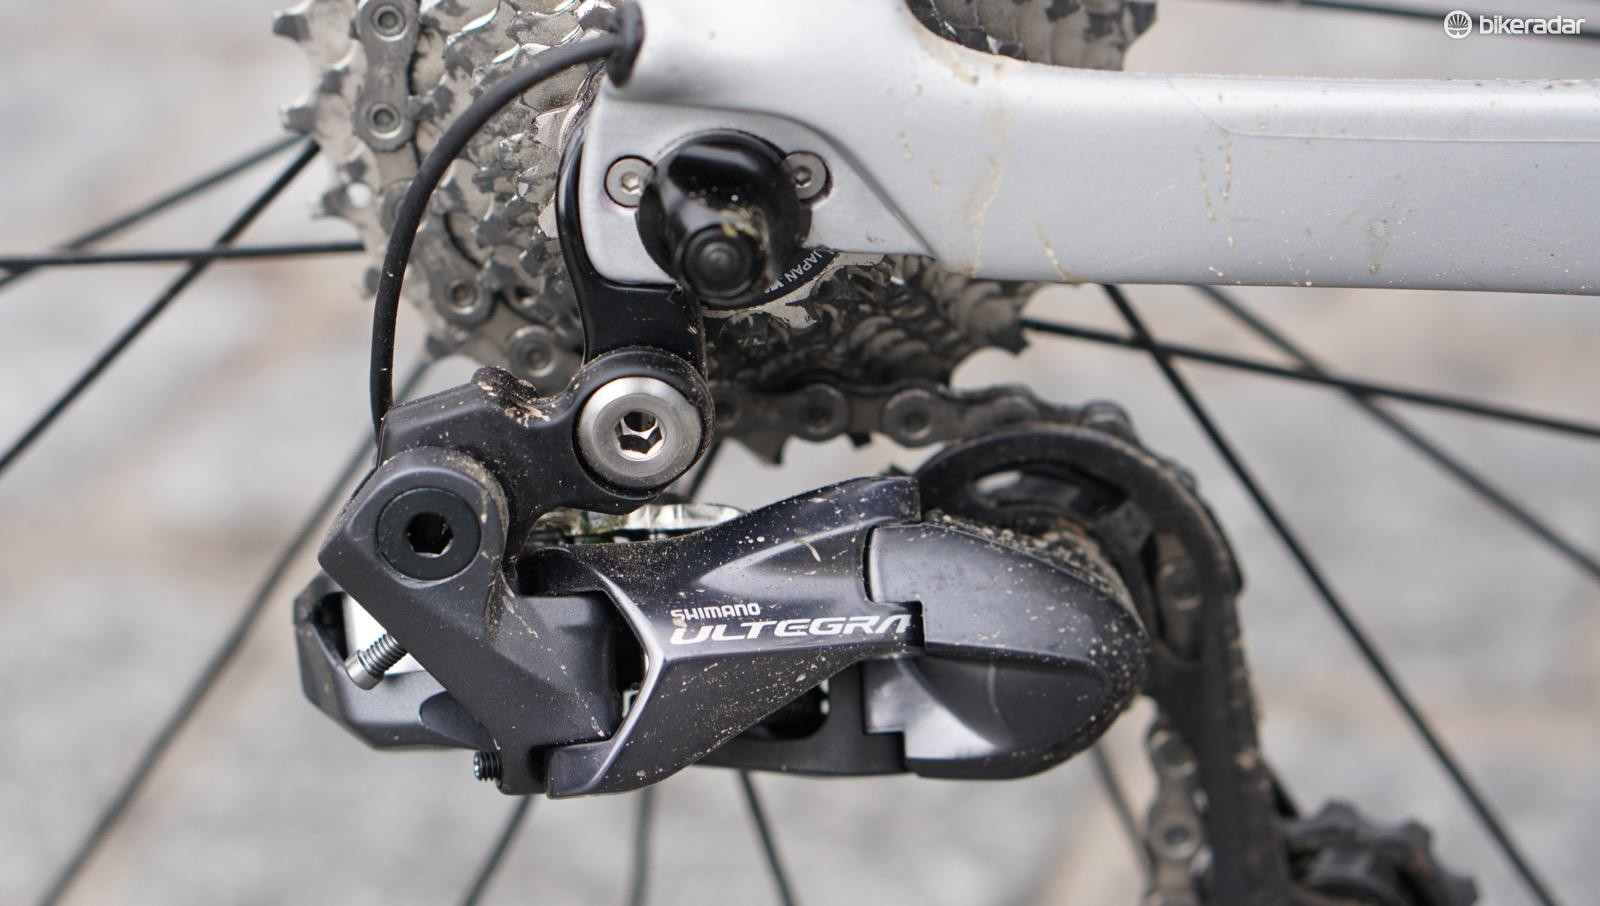 Can you tell the difference in performance between a Dura-Ace Di2 and Ultegra Di2 derailleur? I can't